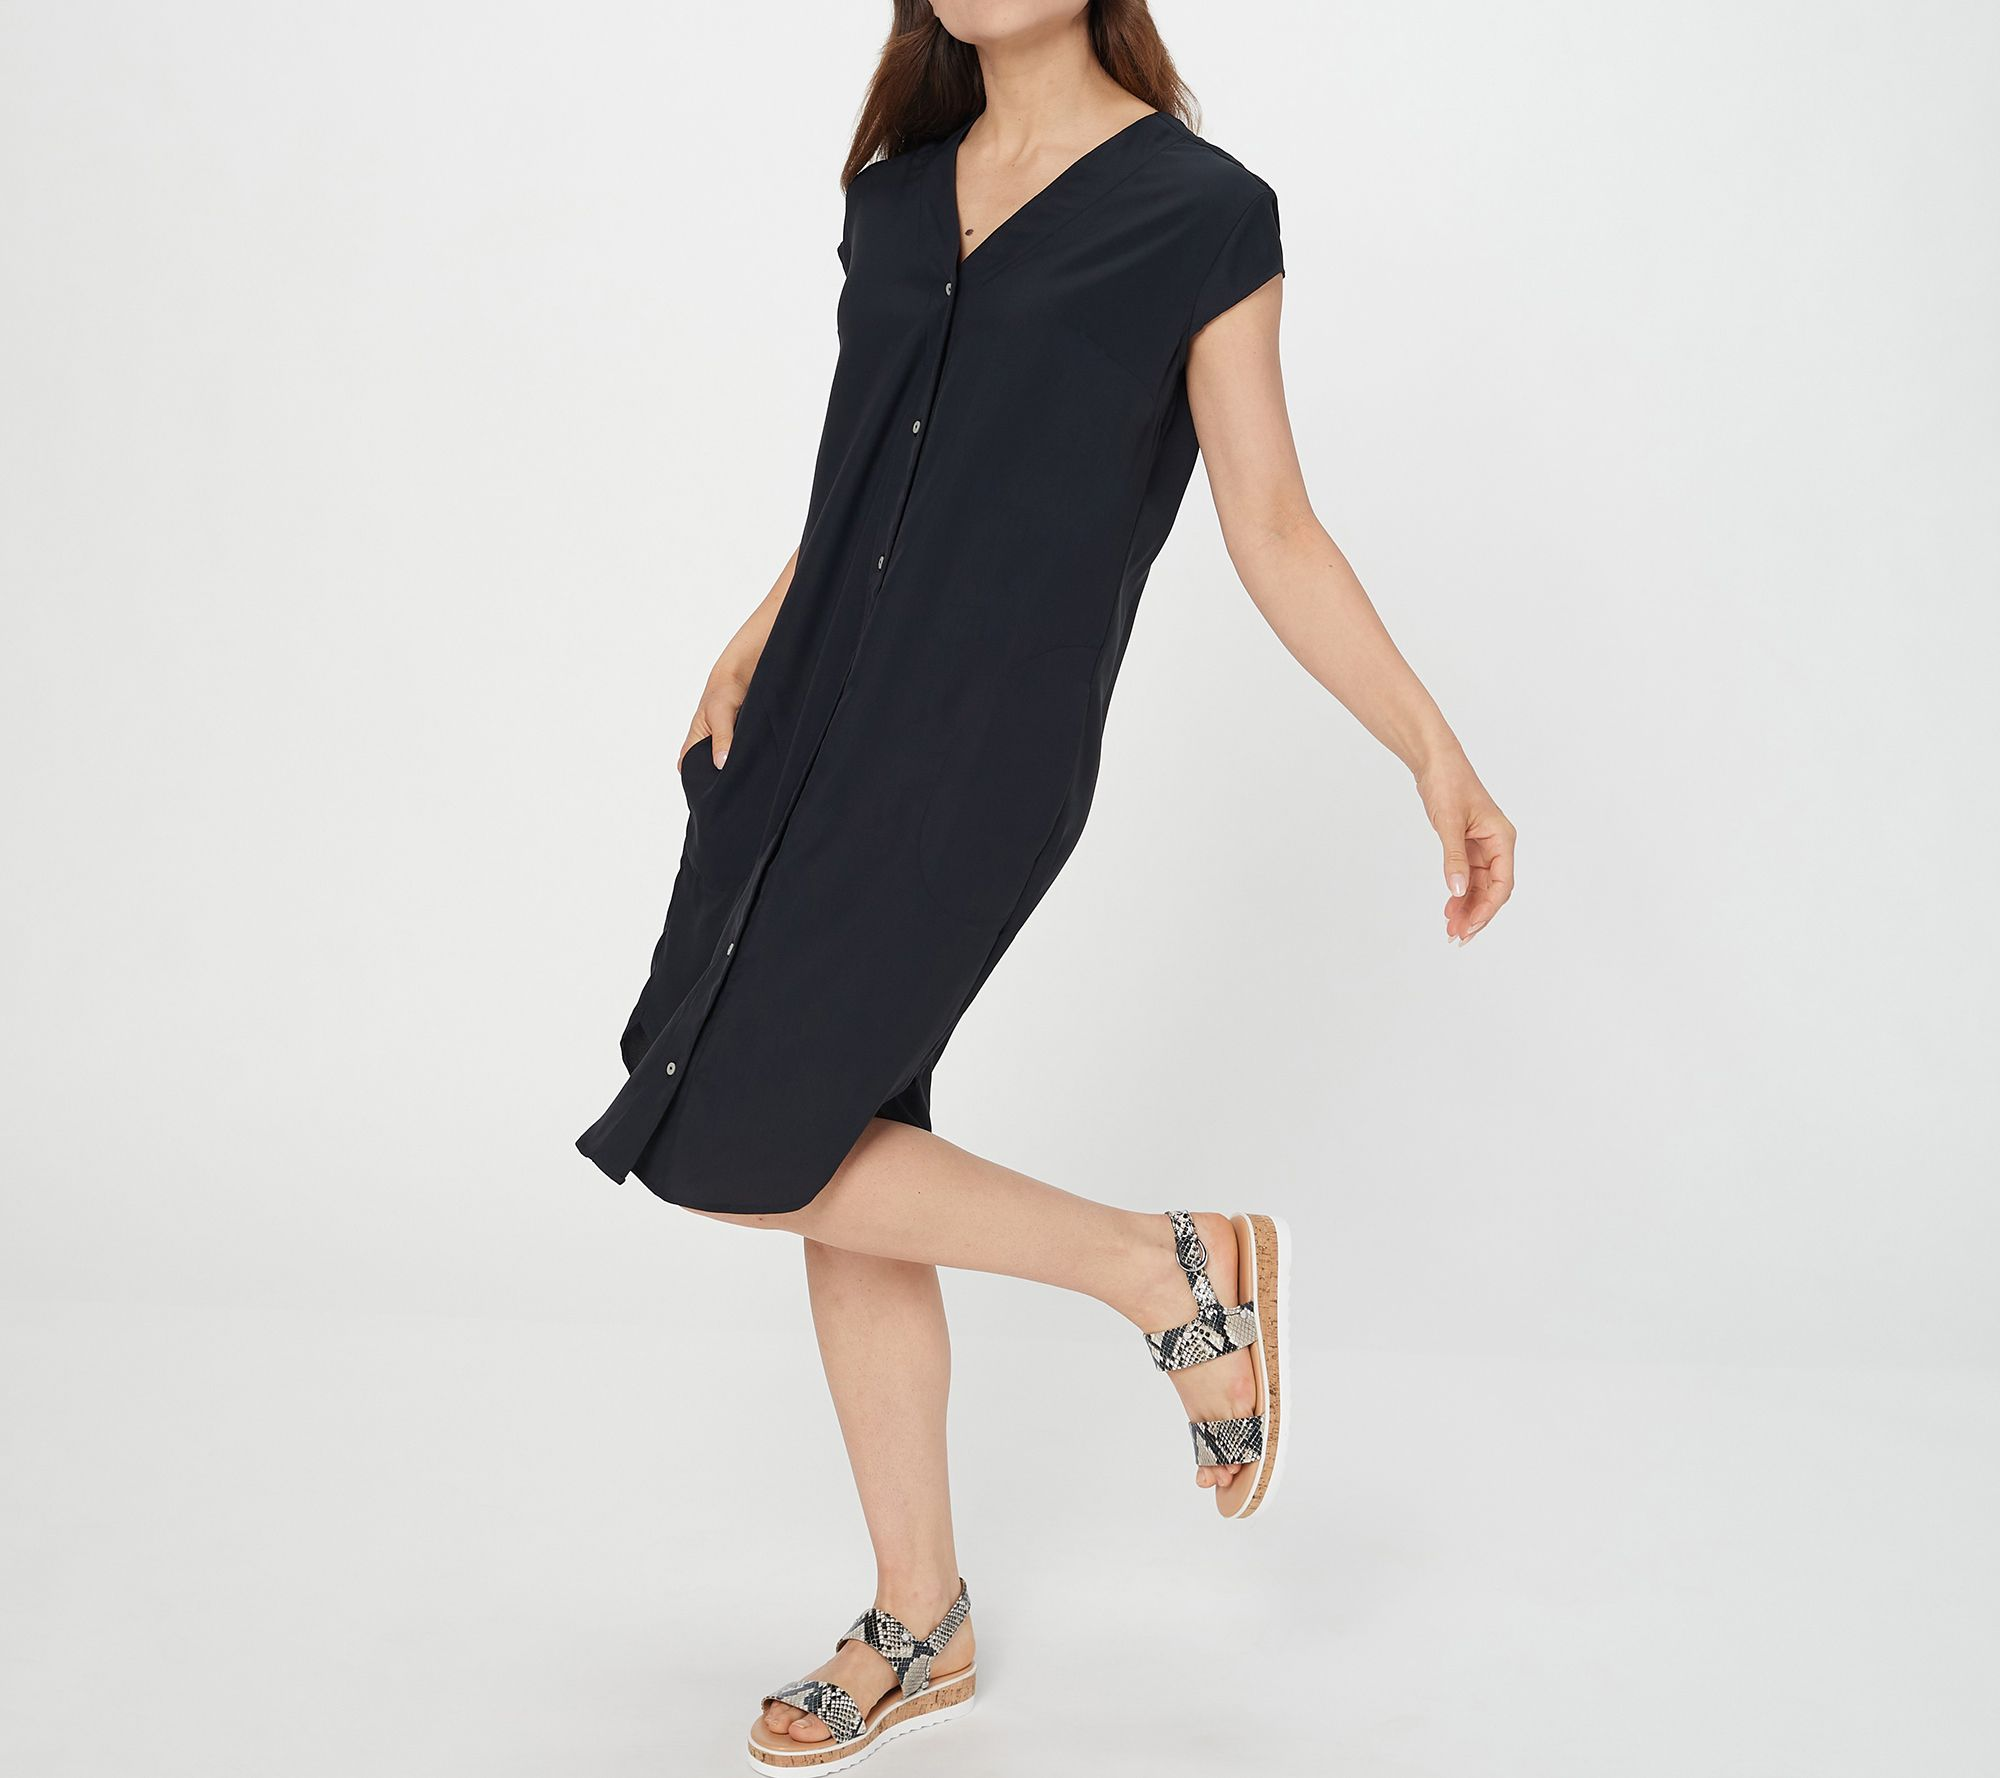 Truth + Style Regular V-Neck Button Front Woven Dress with Pockets